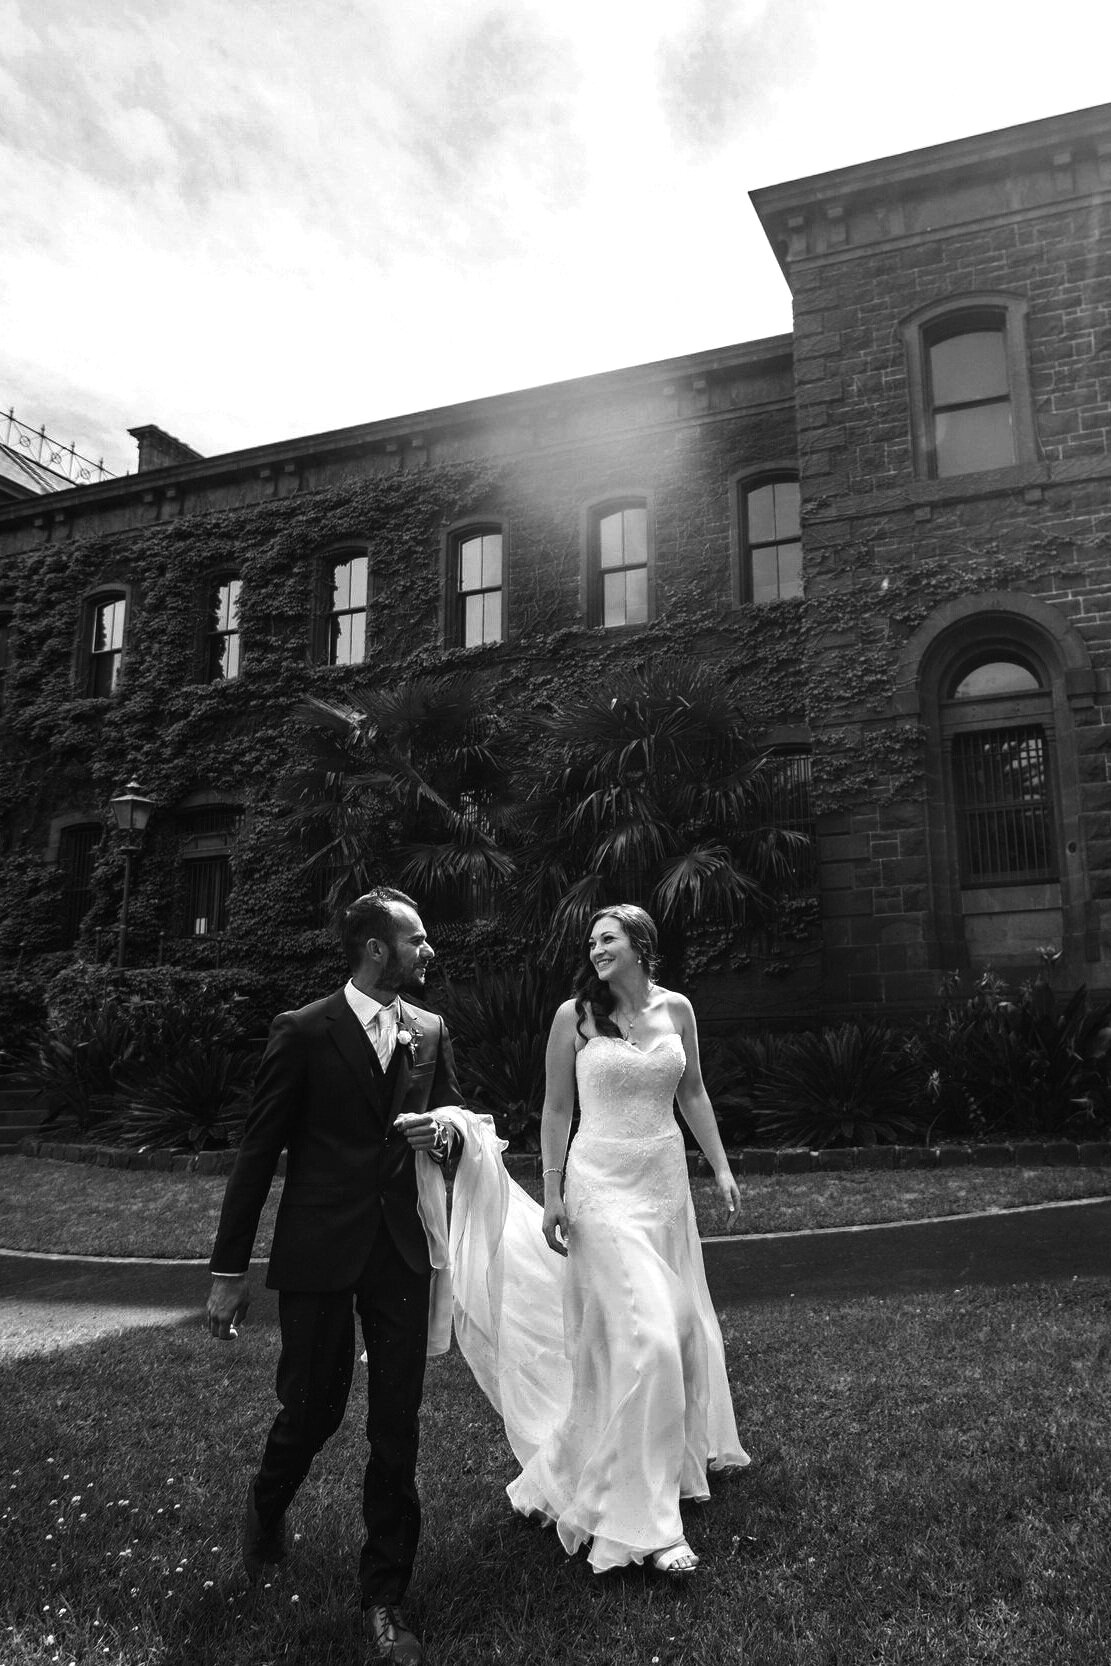 Emily & Alen - Couldn't recommend Alex more highly. His photography skills are amazing and he took some breathtakingly beautiful pictures of our wedding, he has a real eye for it. However, what made it even better was his nature across the entire day. My husband, family and bridal party agree. He was calm, clear and made the process so much fun... which is exactly what you need on a wedding day. He made sure all important things were captured which was appreciated as this was not something I was thinking about over the day. Definitely book him!!